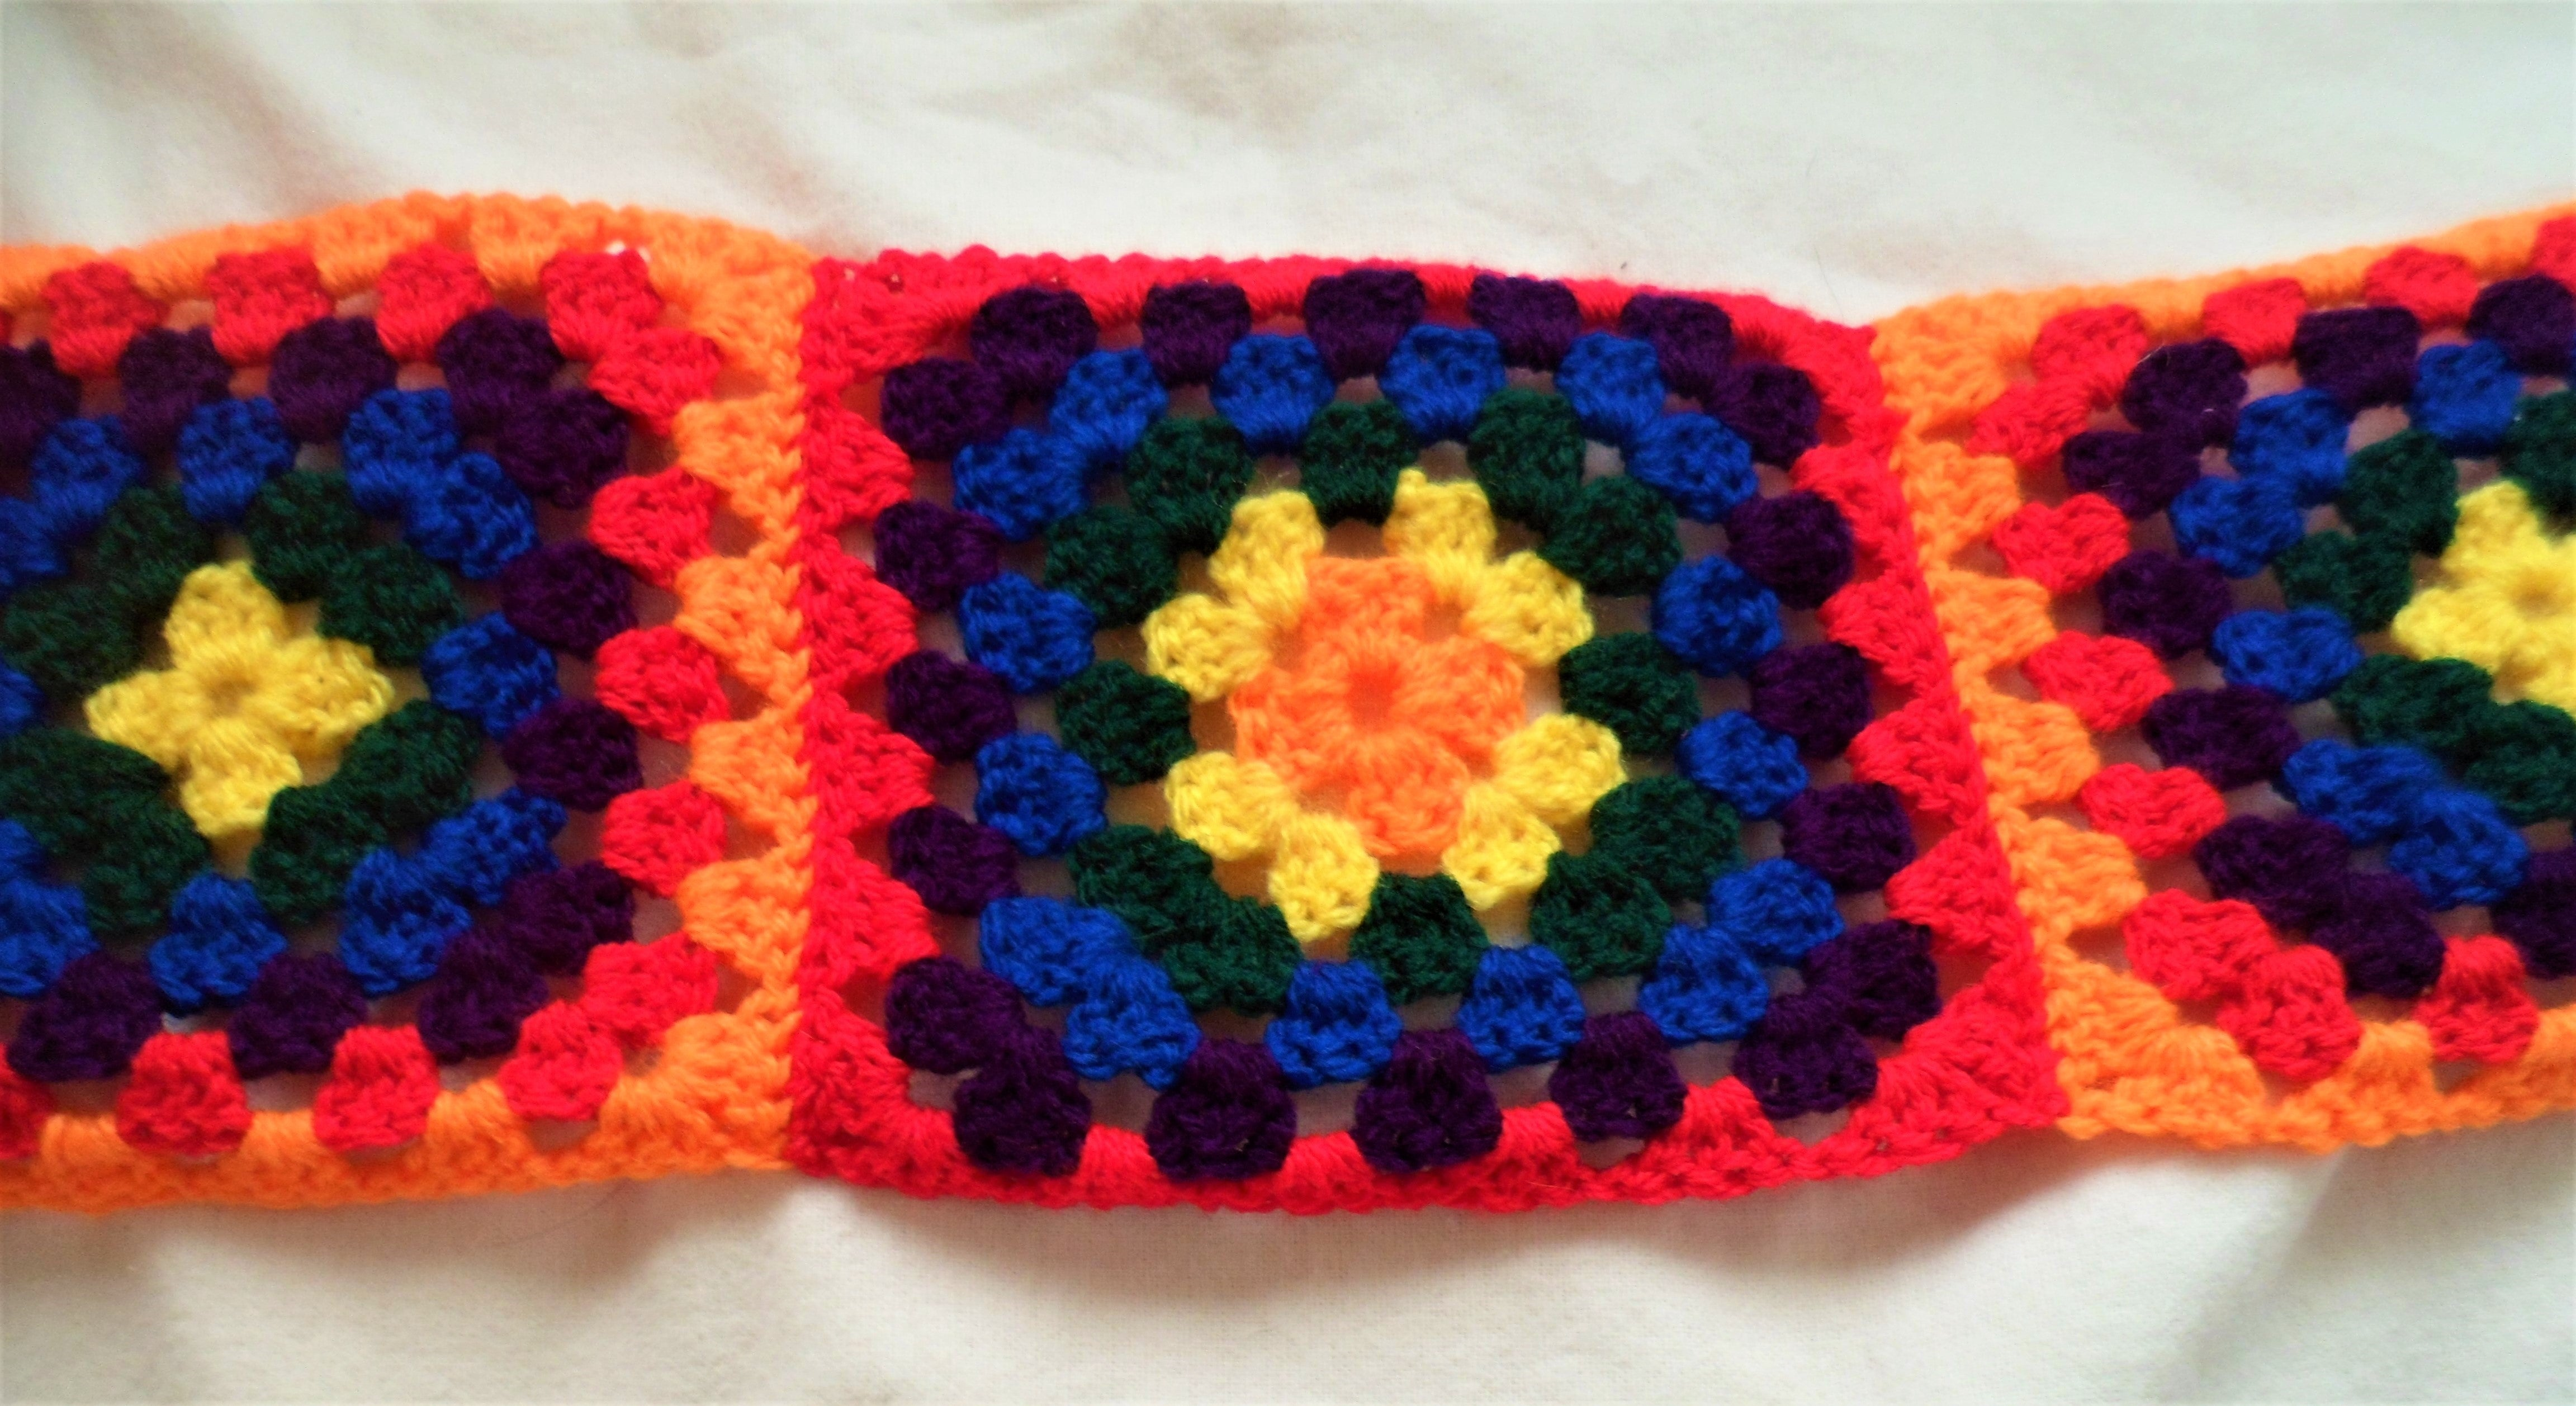 Rainbow Crochet Granny Square Scarf - Tully Crafts